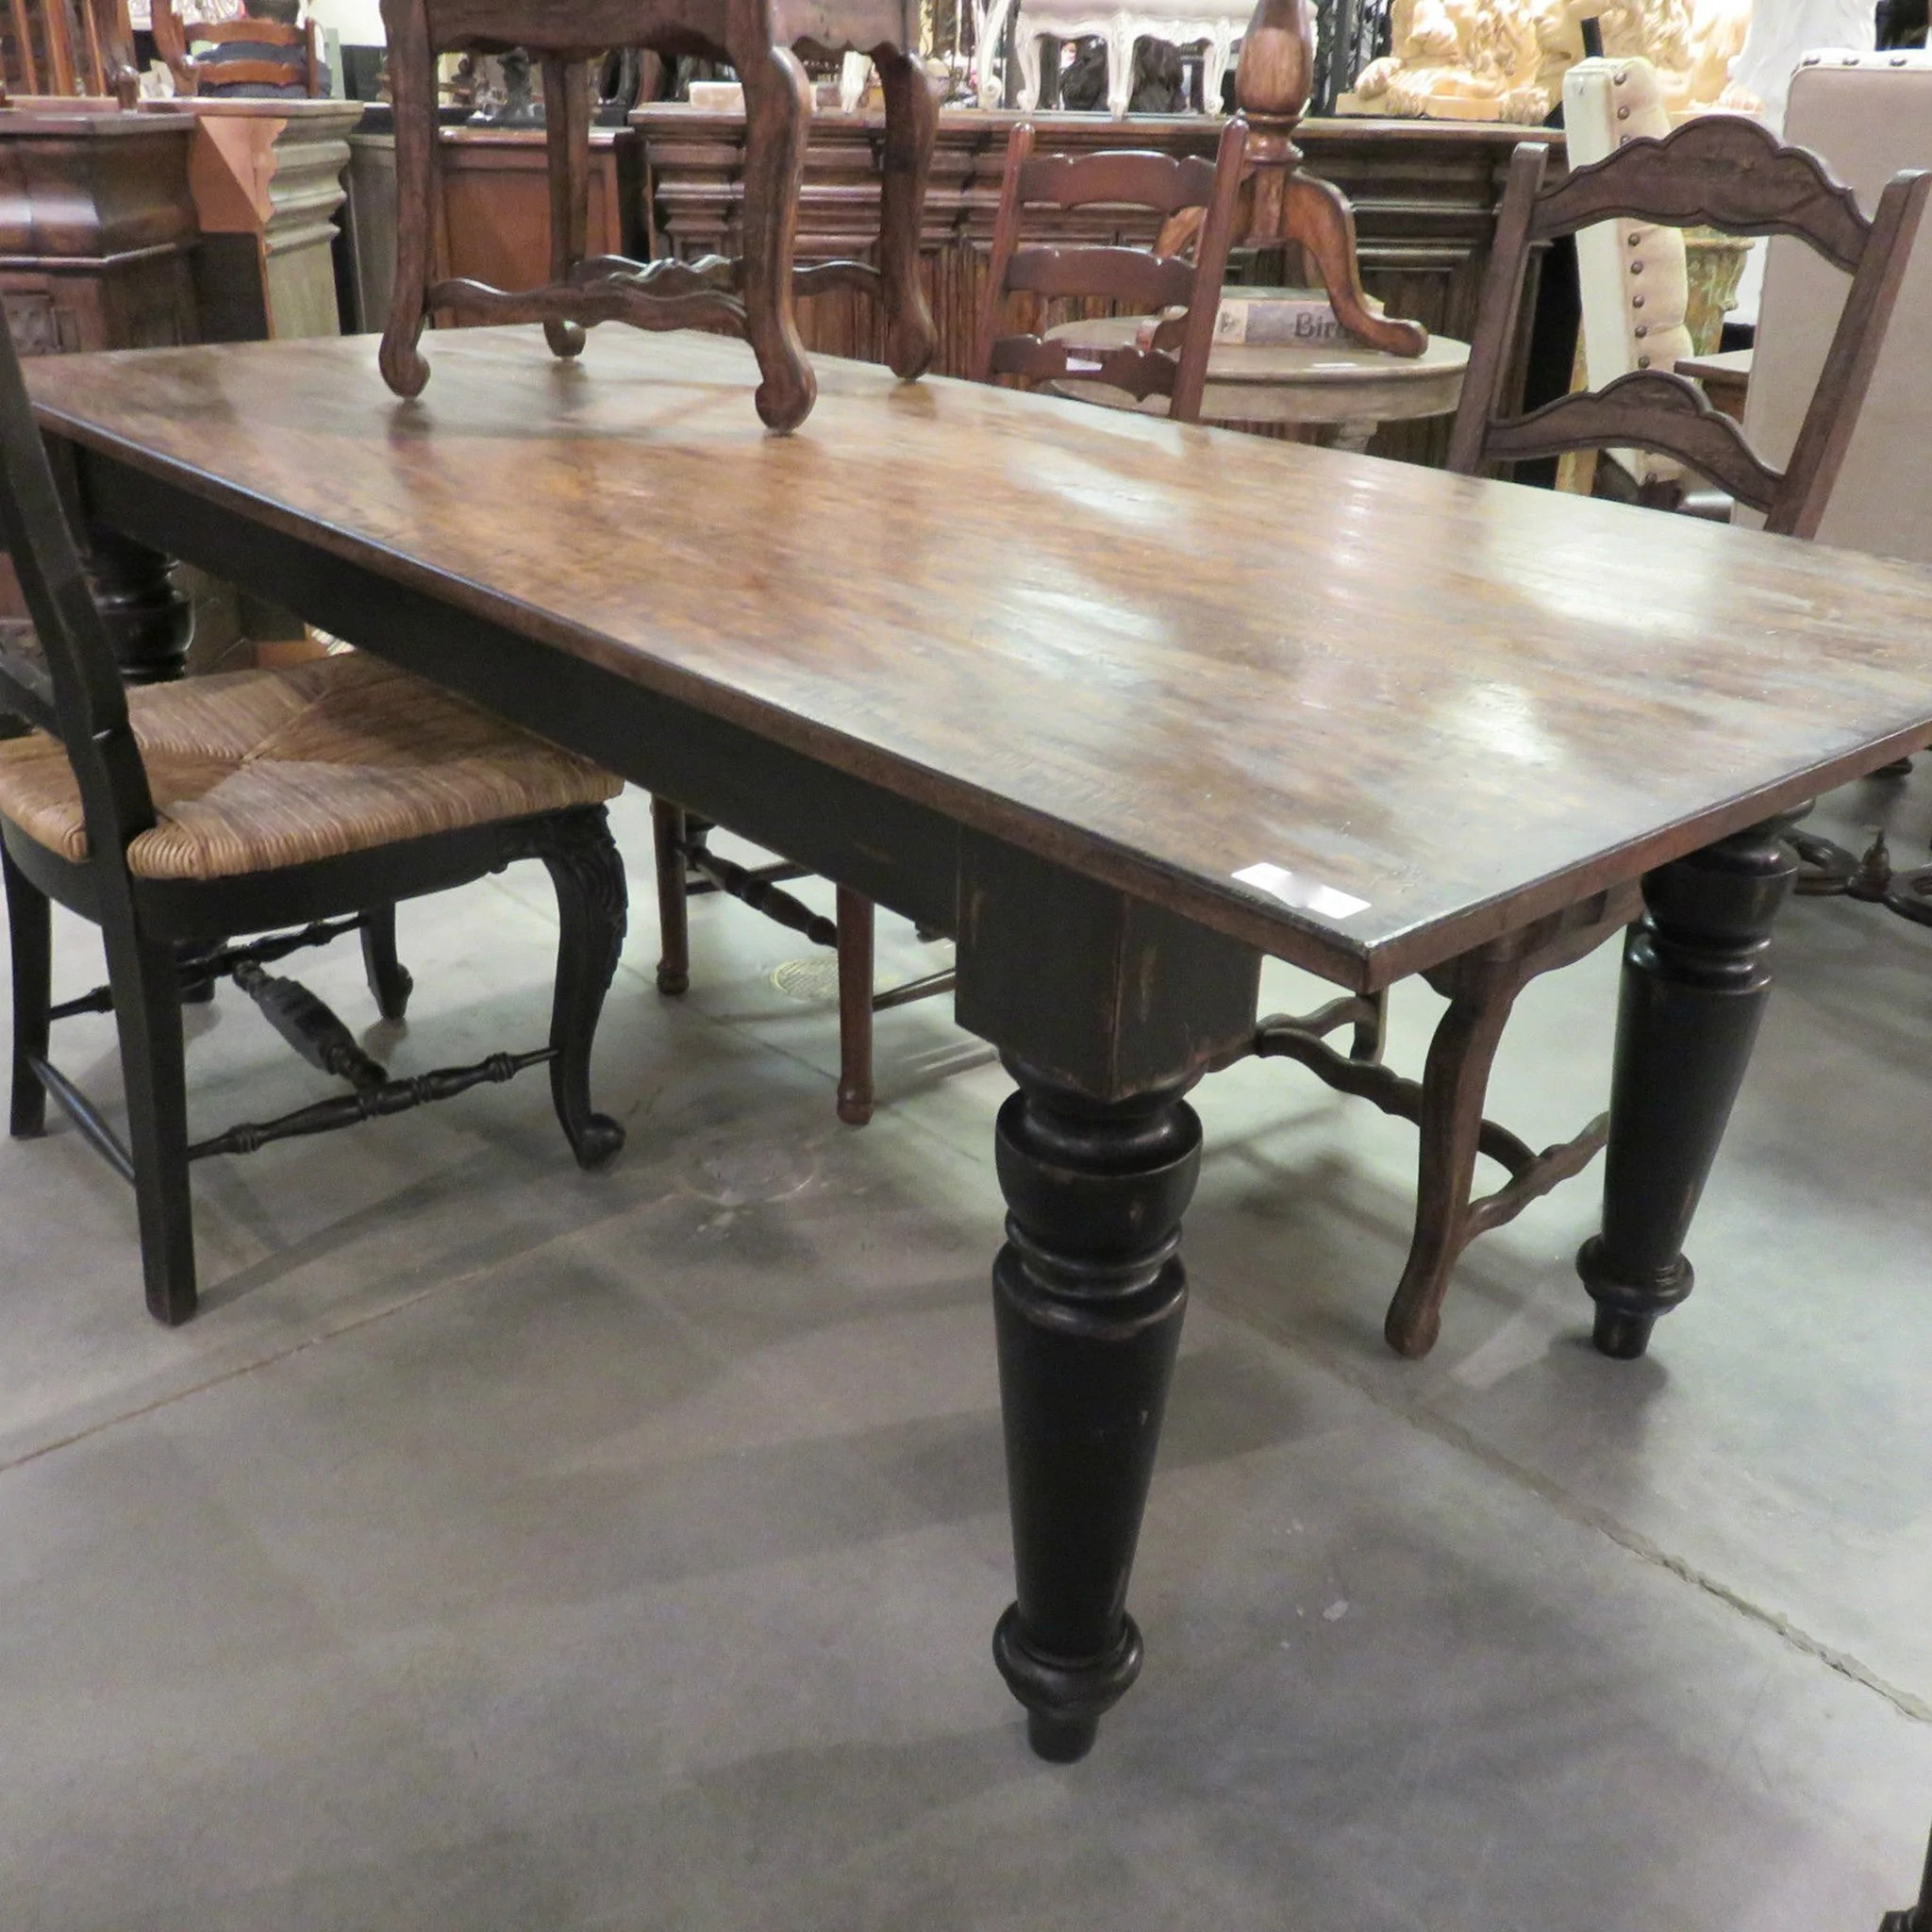 Rustic Farmhouse Dining Table 84 Black Distressed Reclaimed Wood Top